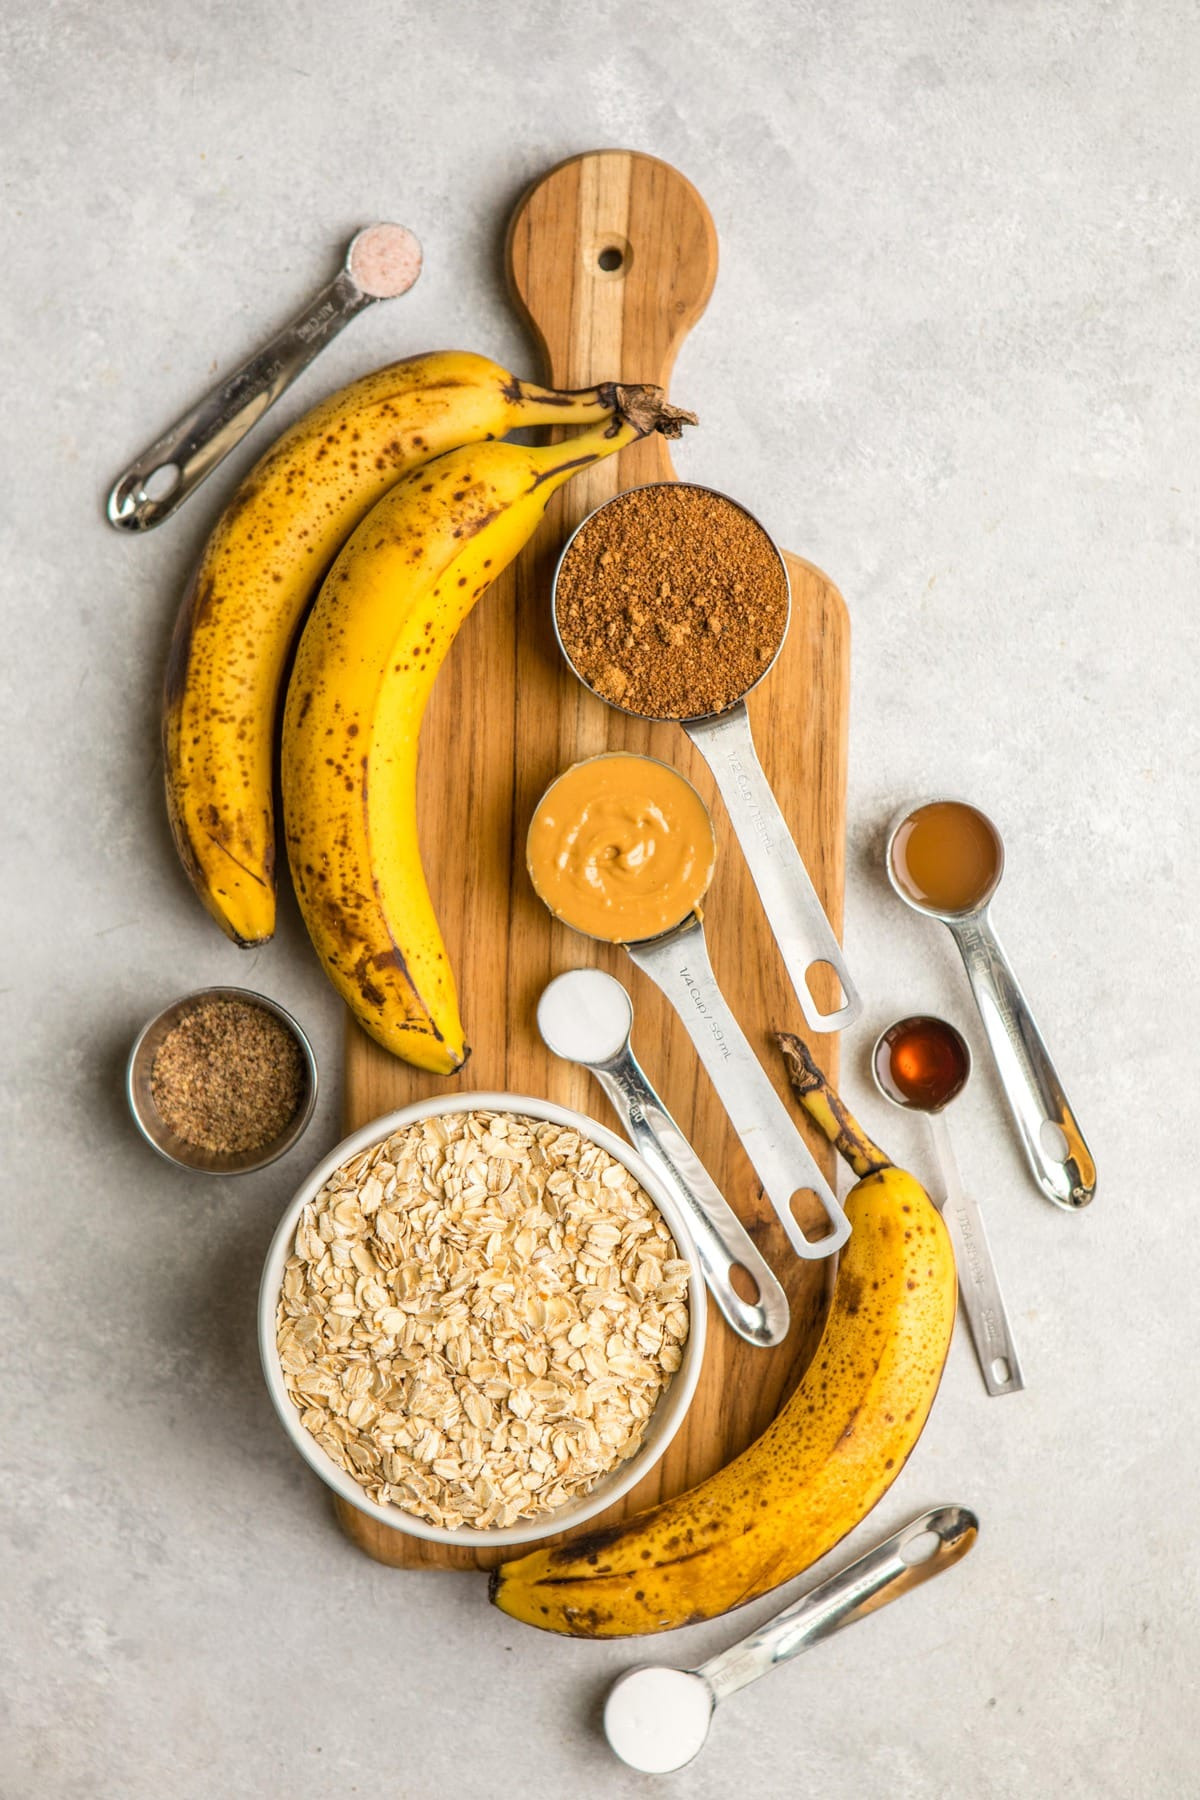 ingredients for banana bread in measuring cups on long wooden serving board